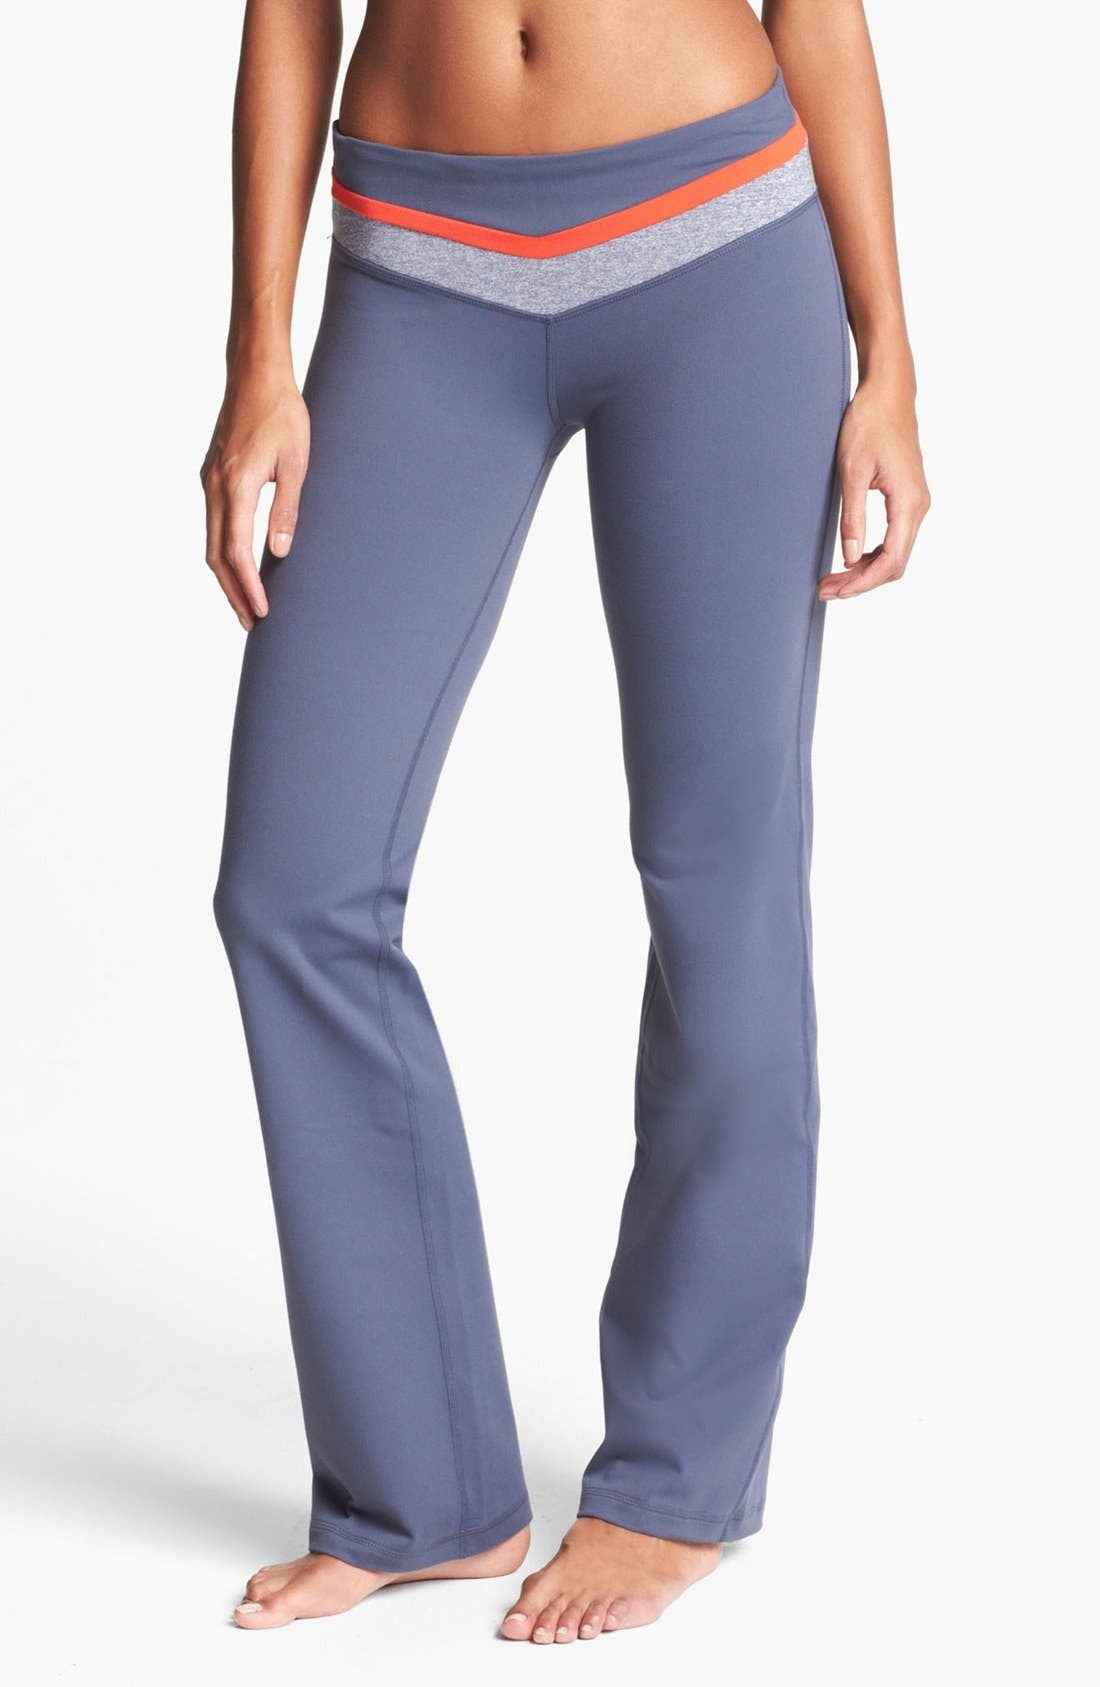 Alternate Image 1 Selected - Zella 'Booty' Colorblock Waist Pants